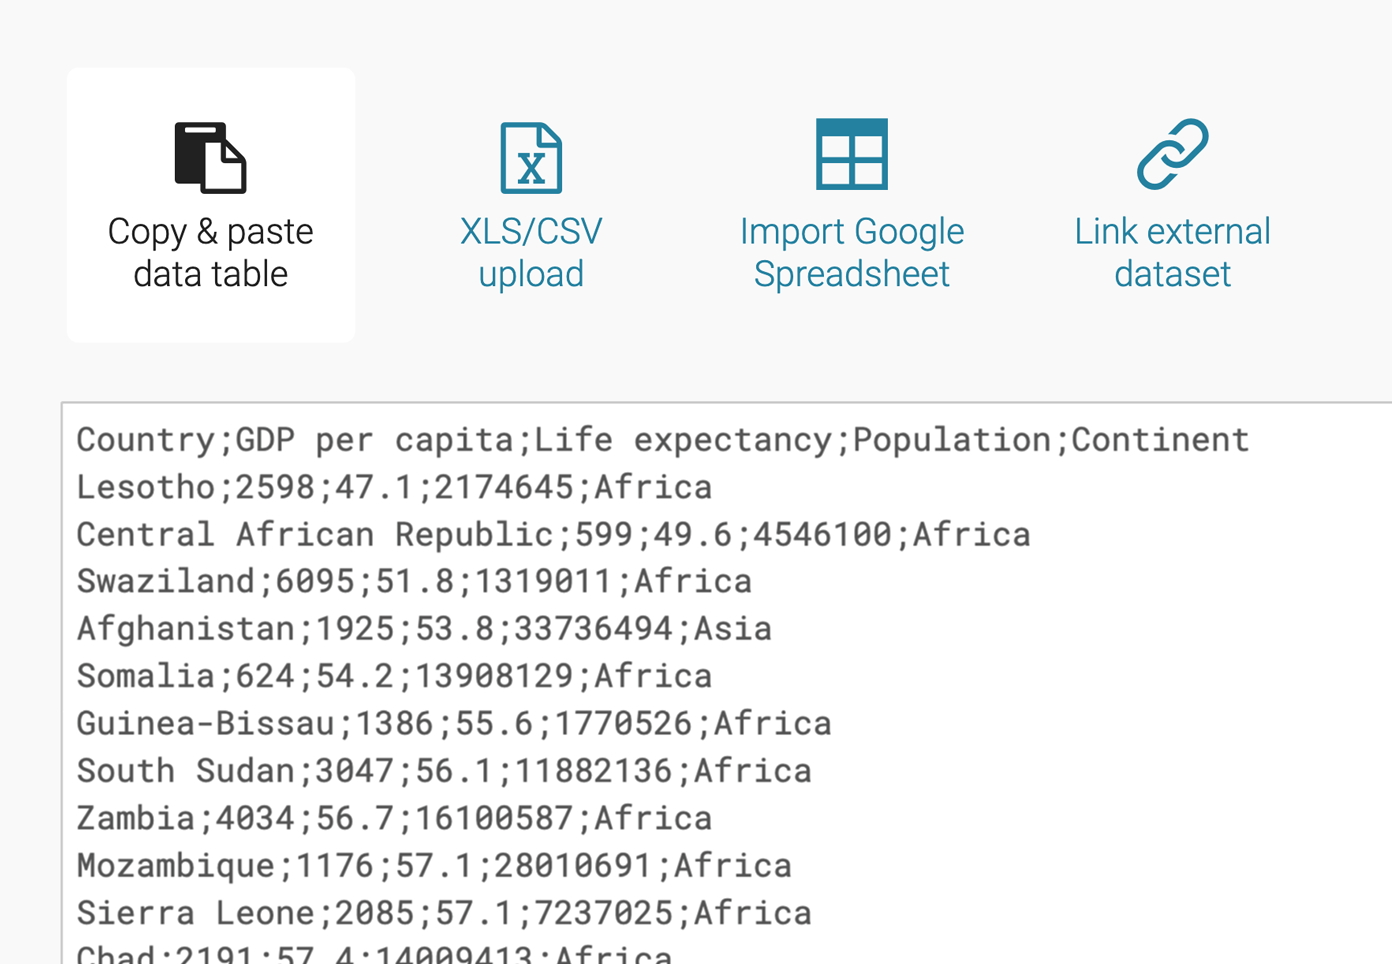 screenshot of step 1 in Datavis: upload your data